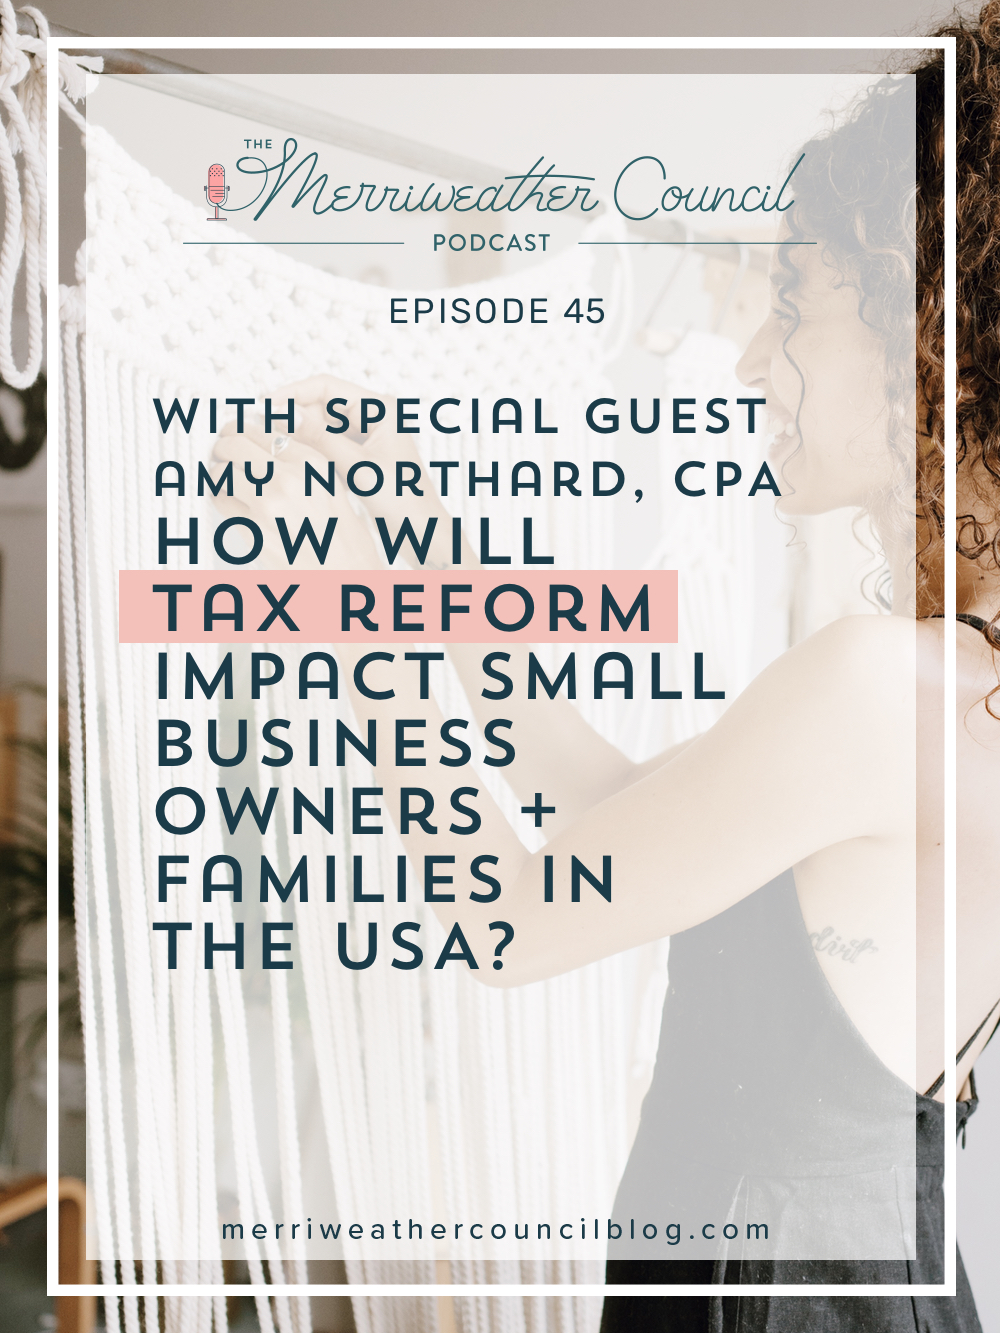 An interview with Amy Northard discussing the impact of tax reform on small business owners in the USA. | The Merriweather Council